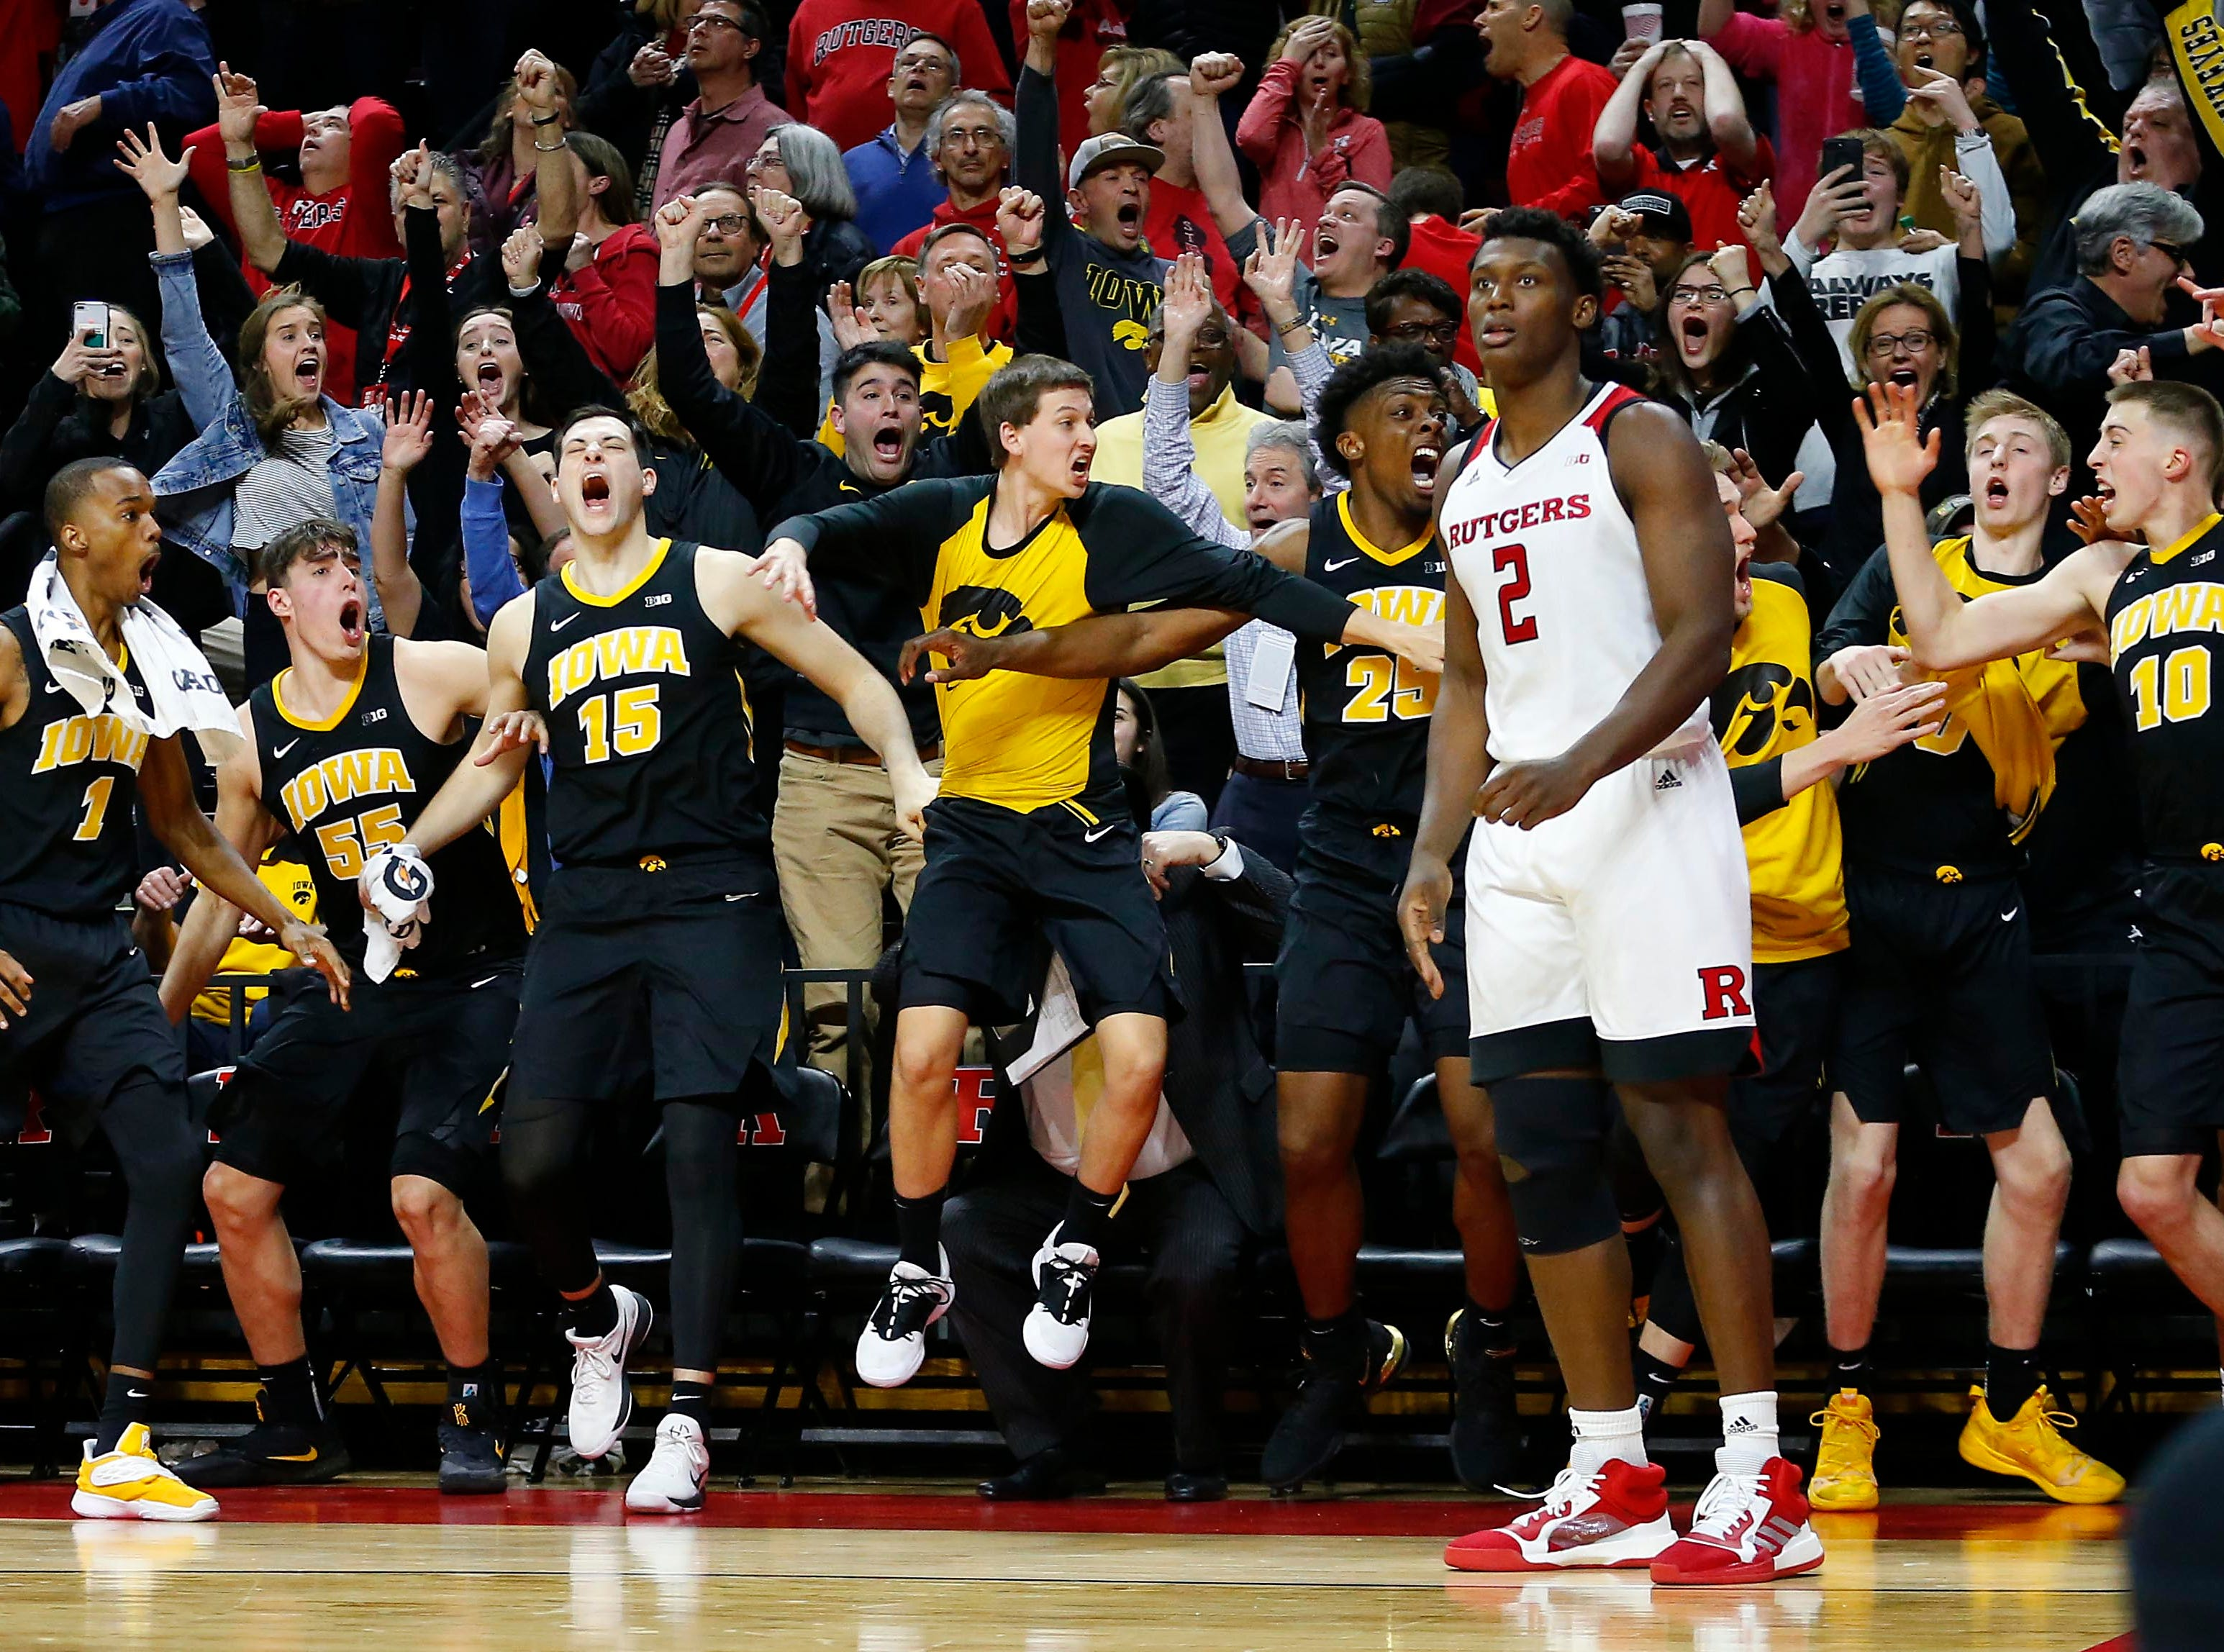 Feb. 16: Rutgers Scarlet Knights center Shaquille Doorson (2) reacts after Iowa Hawkeyes guard Joe Wieskamp (10) banked in the game-winning 3-pointer at the buzzer at Rutgers Athletic Center (RAC).